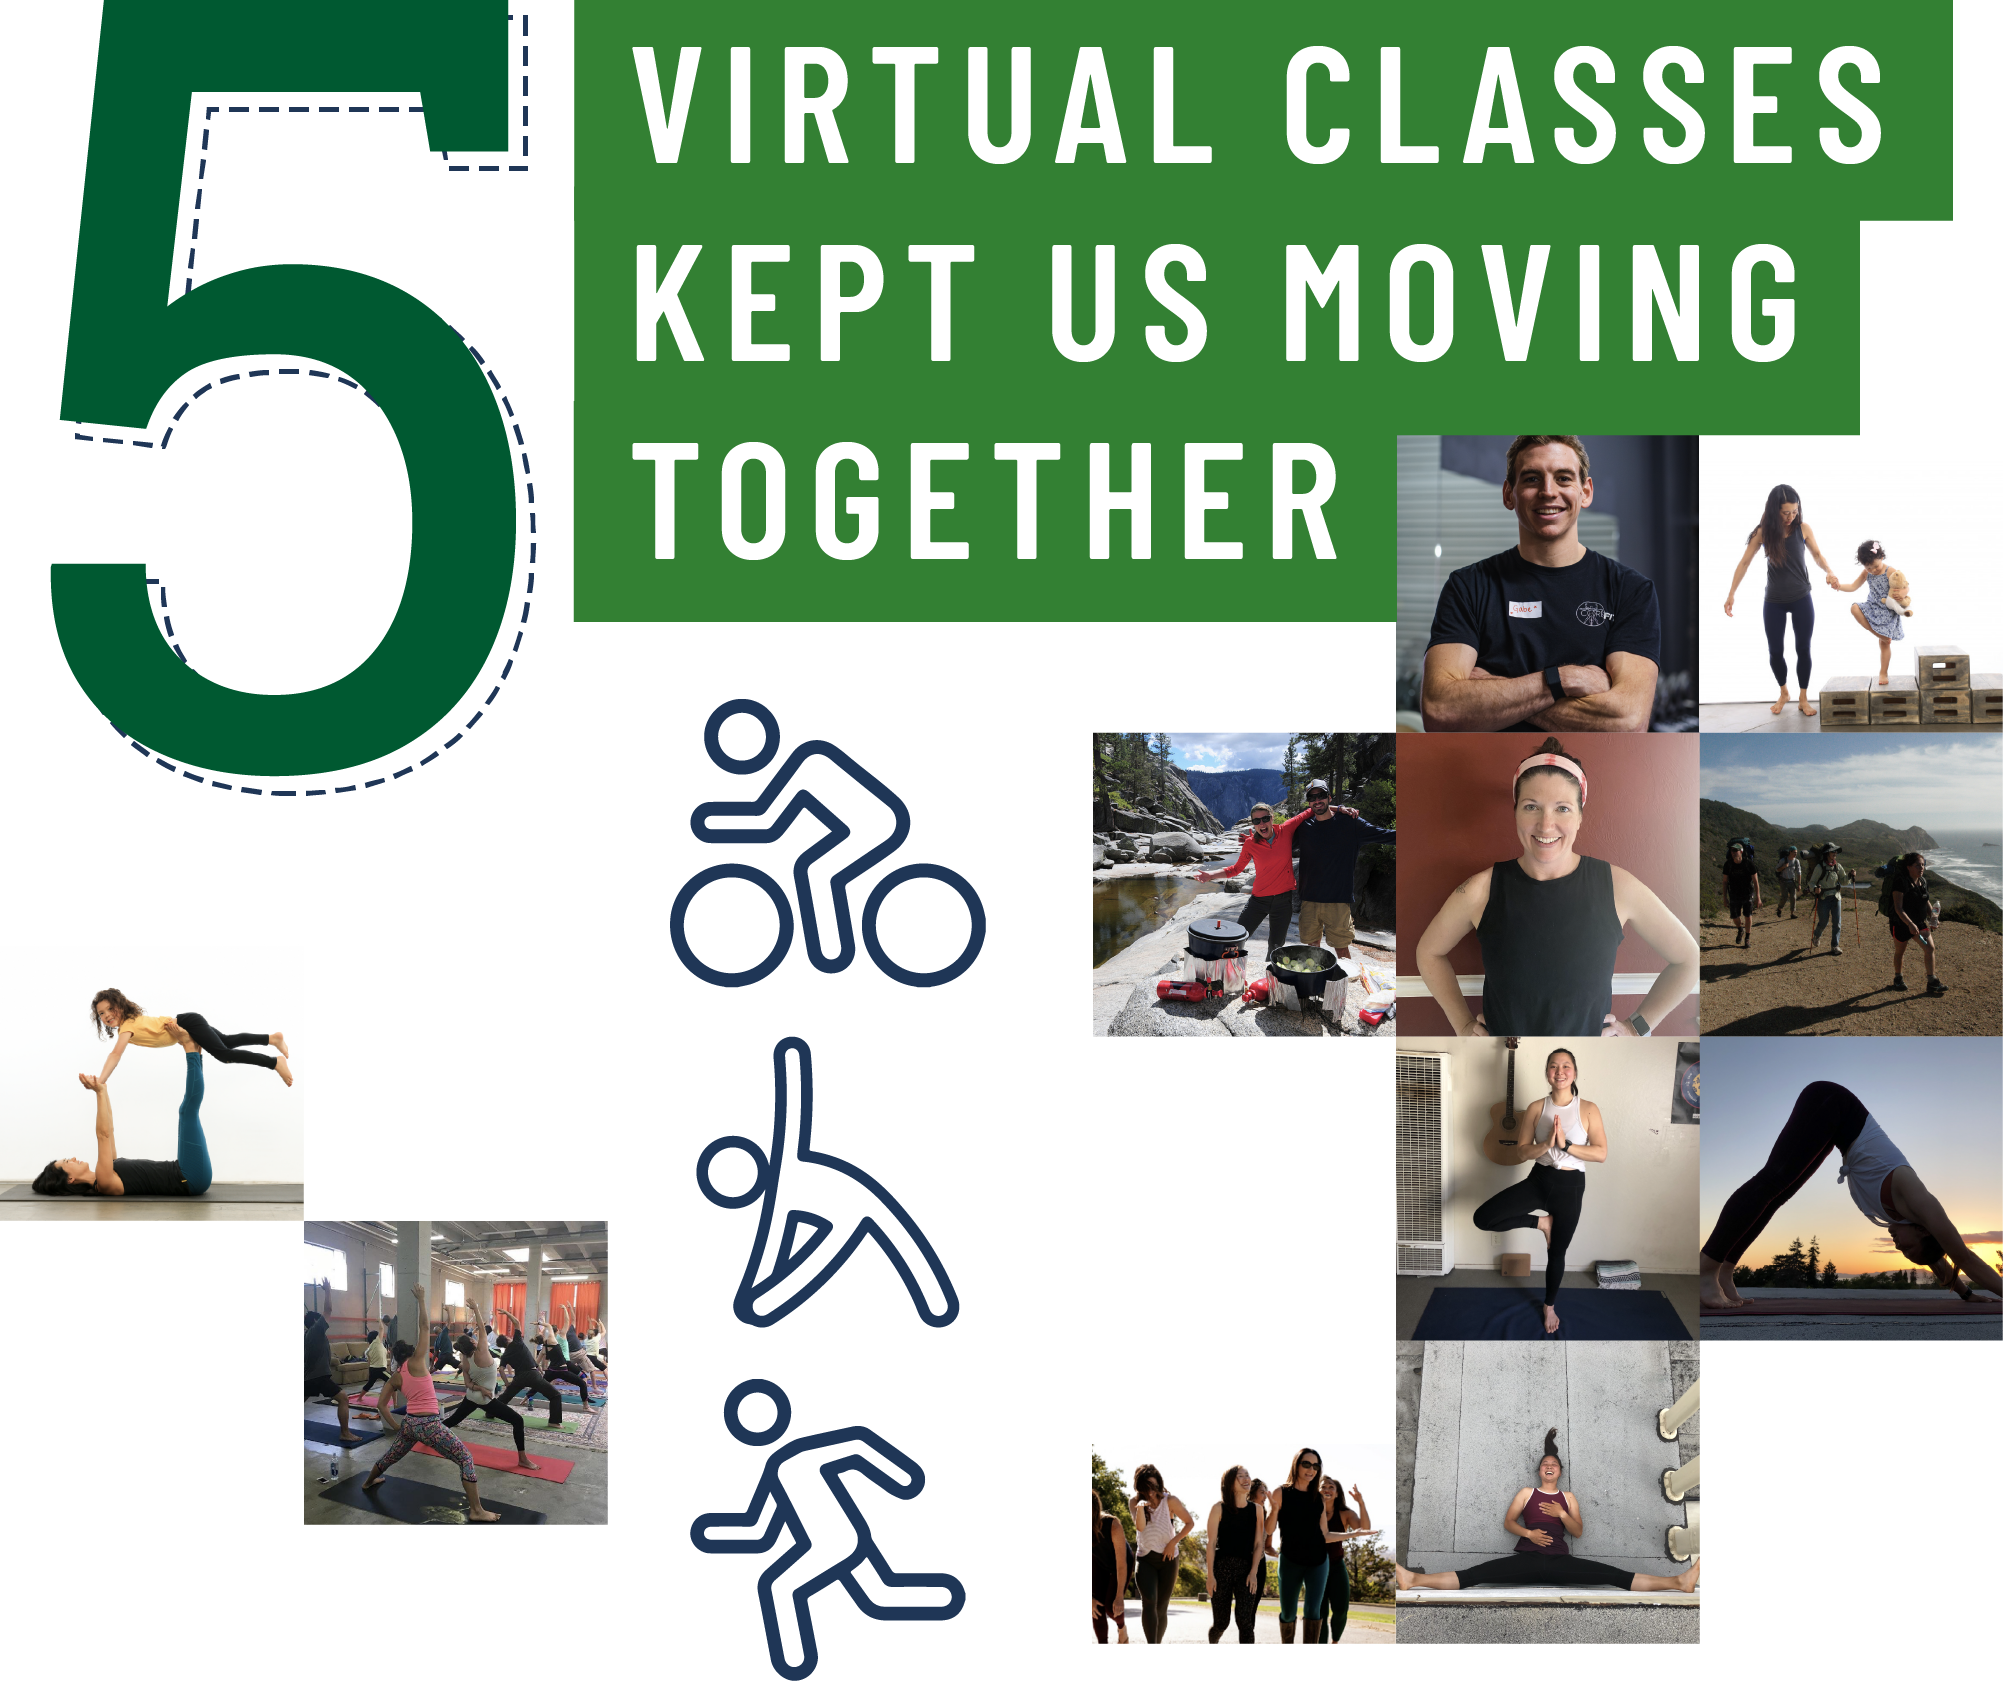 5. Virtual classes kept us moving together